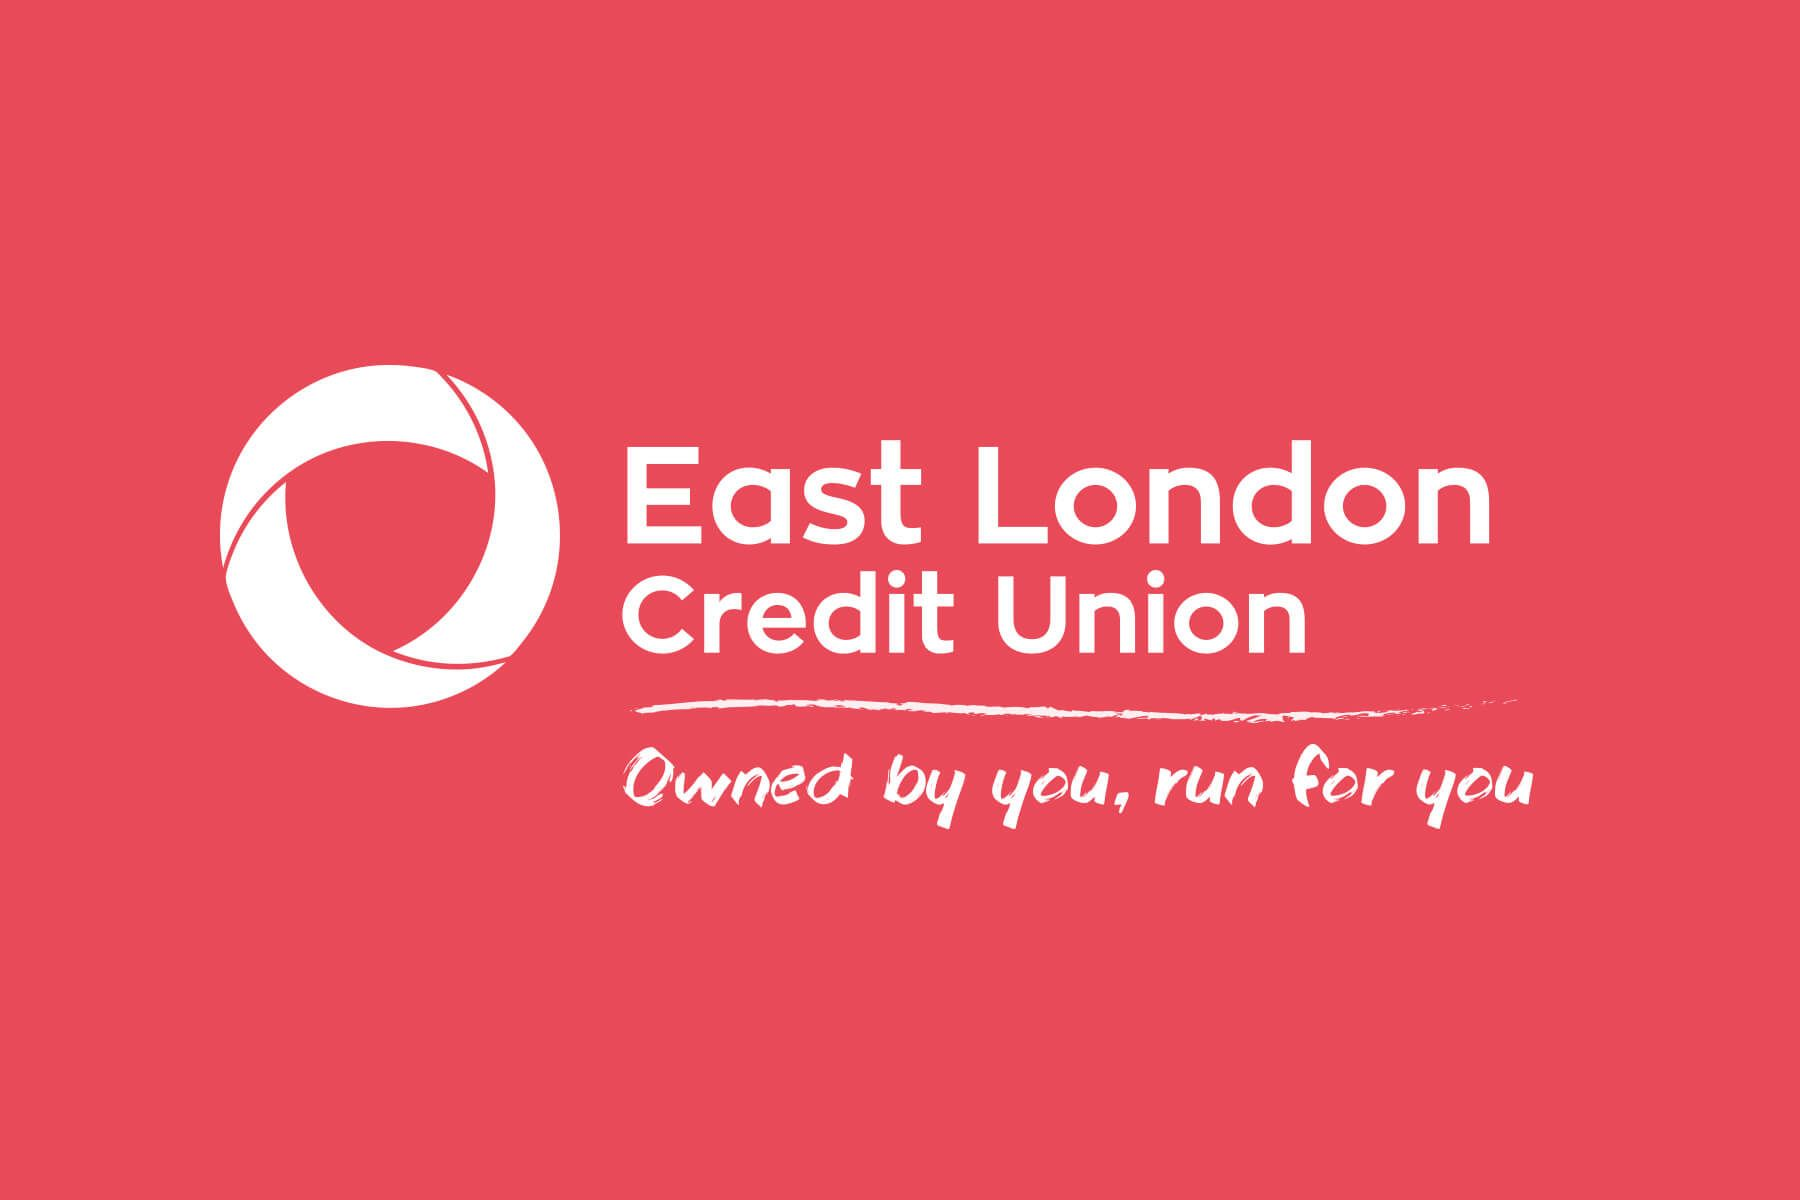 East London Credit Union / Community fit finances